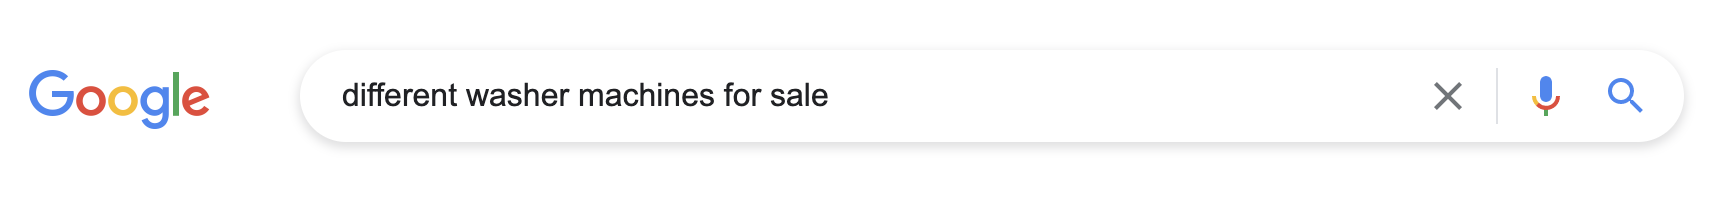 google search for washer machines